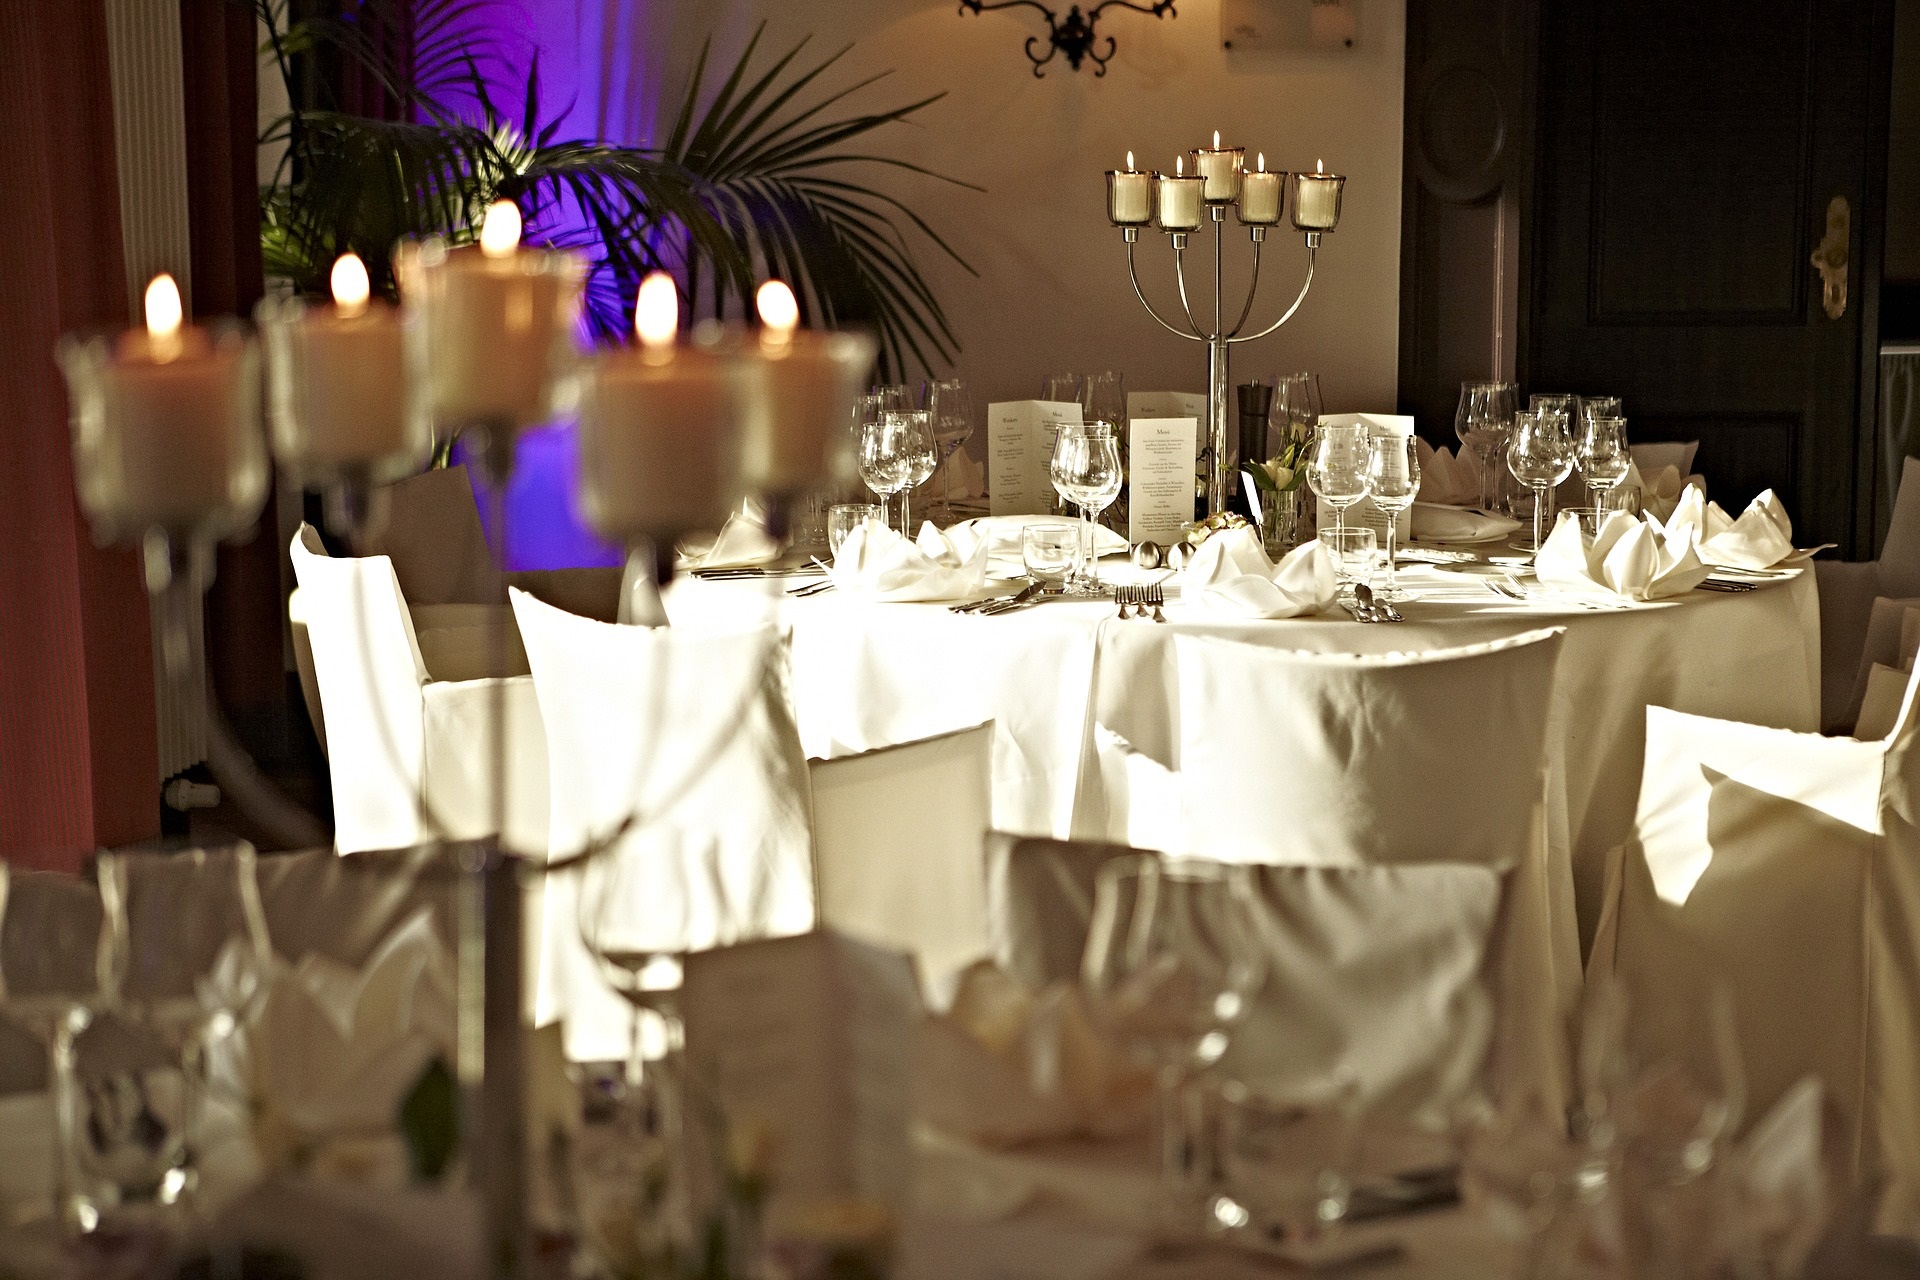 gala-on-the-green-supporting-brisbane-youth-service-ballroom